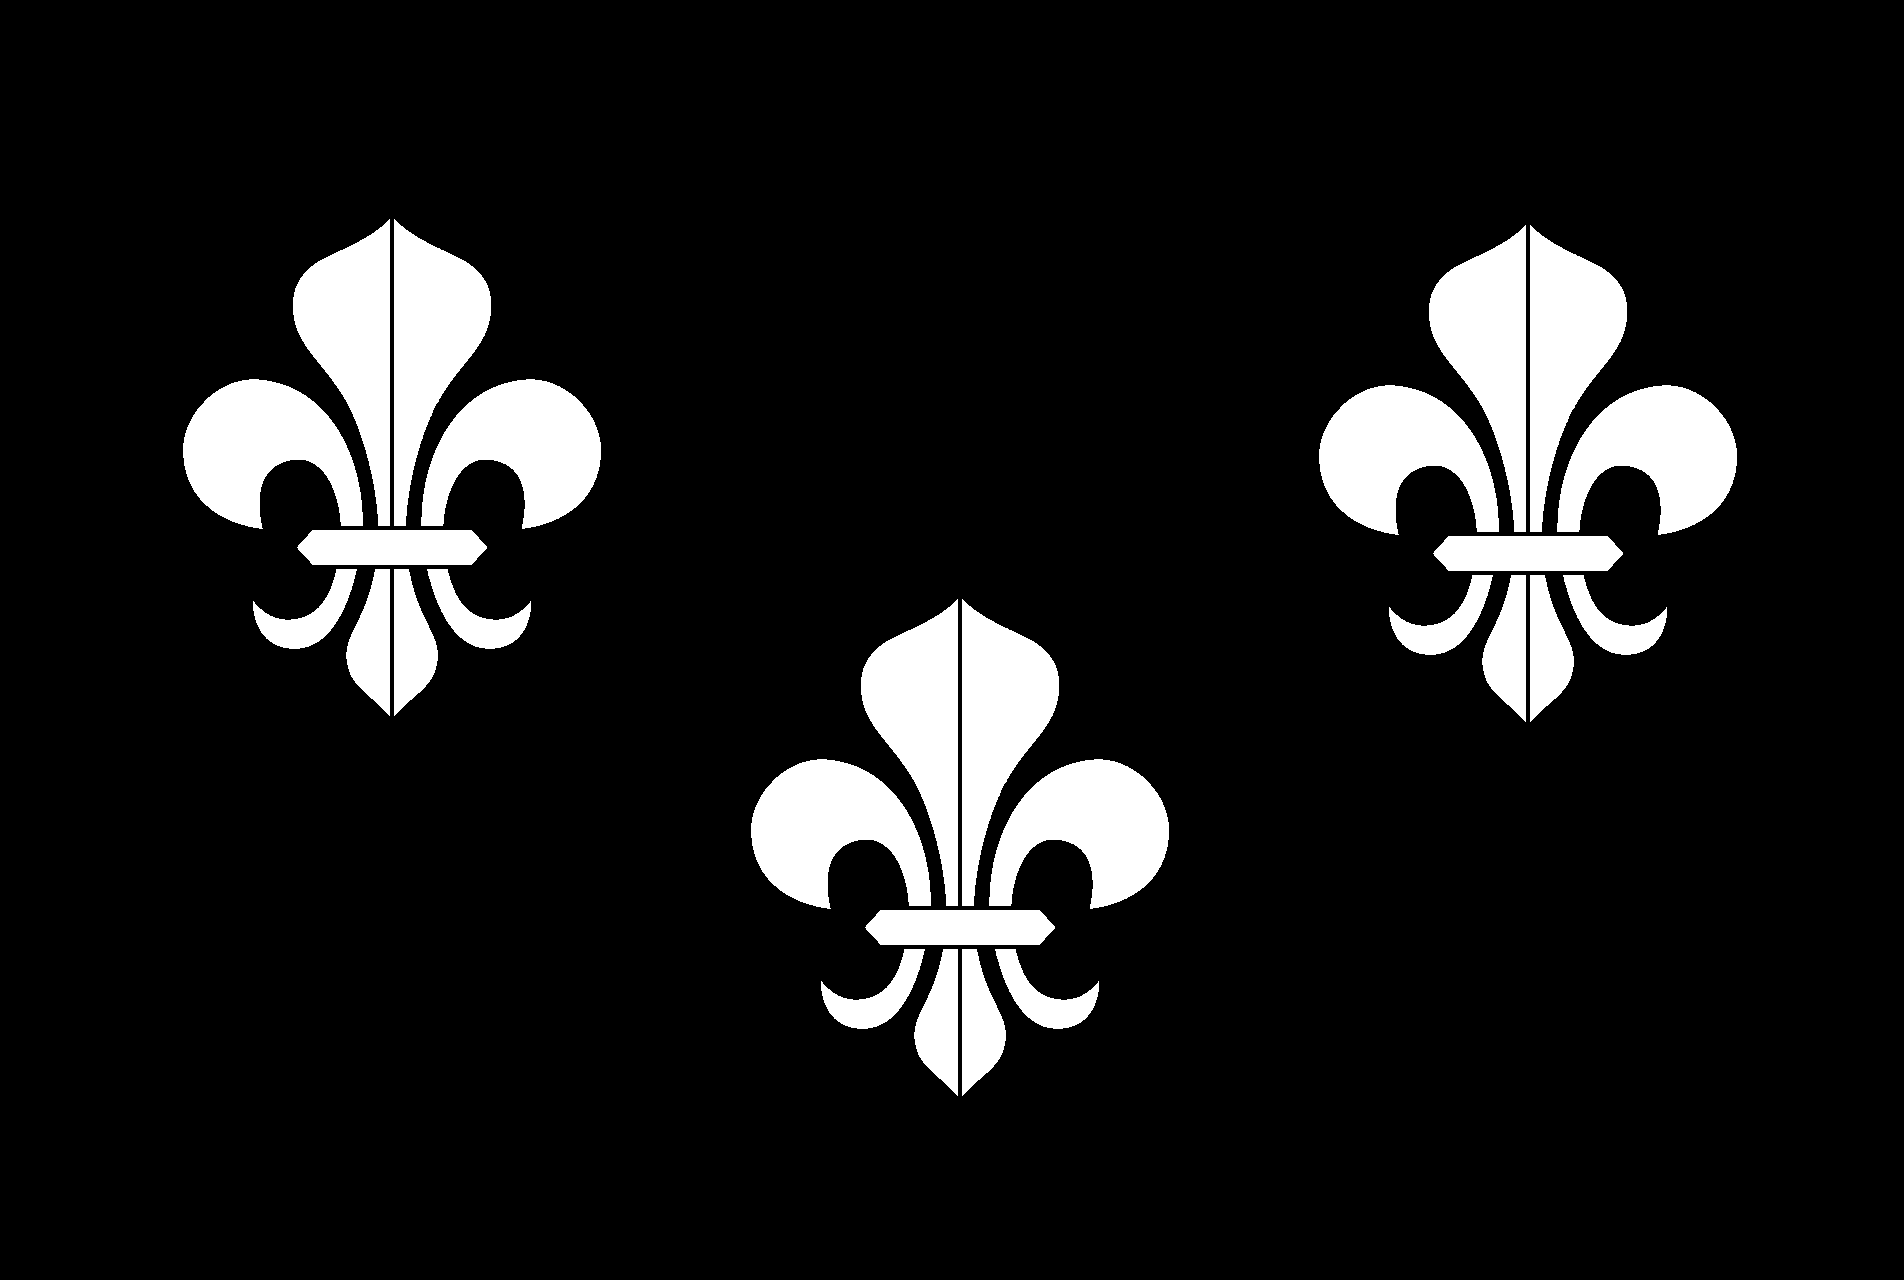 Monochrome French flag.png